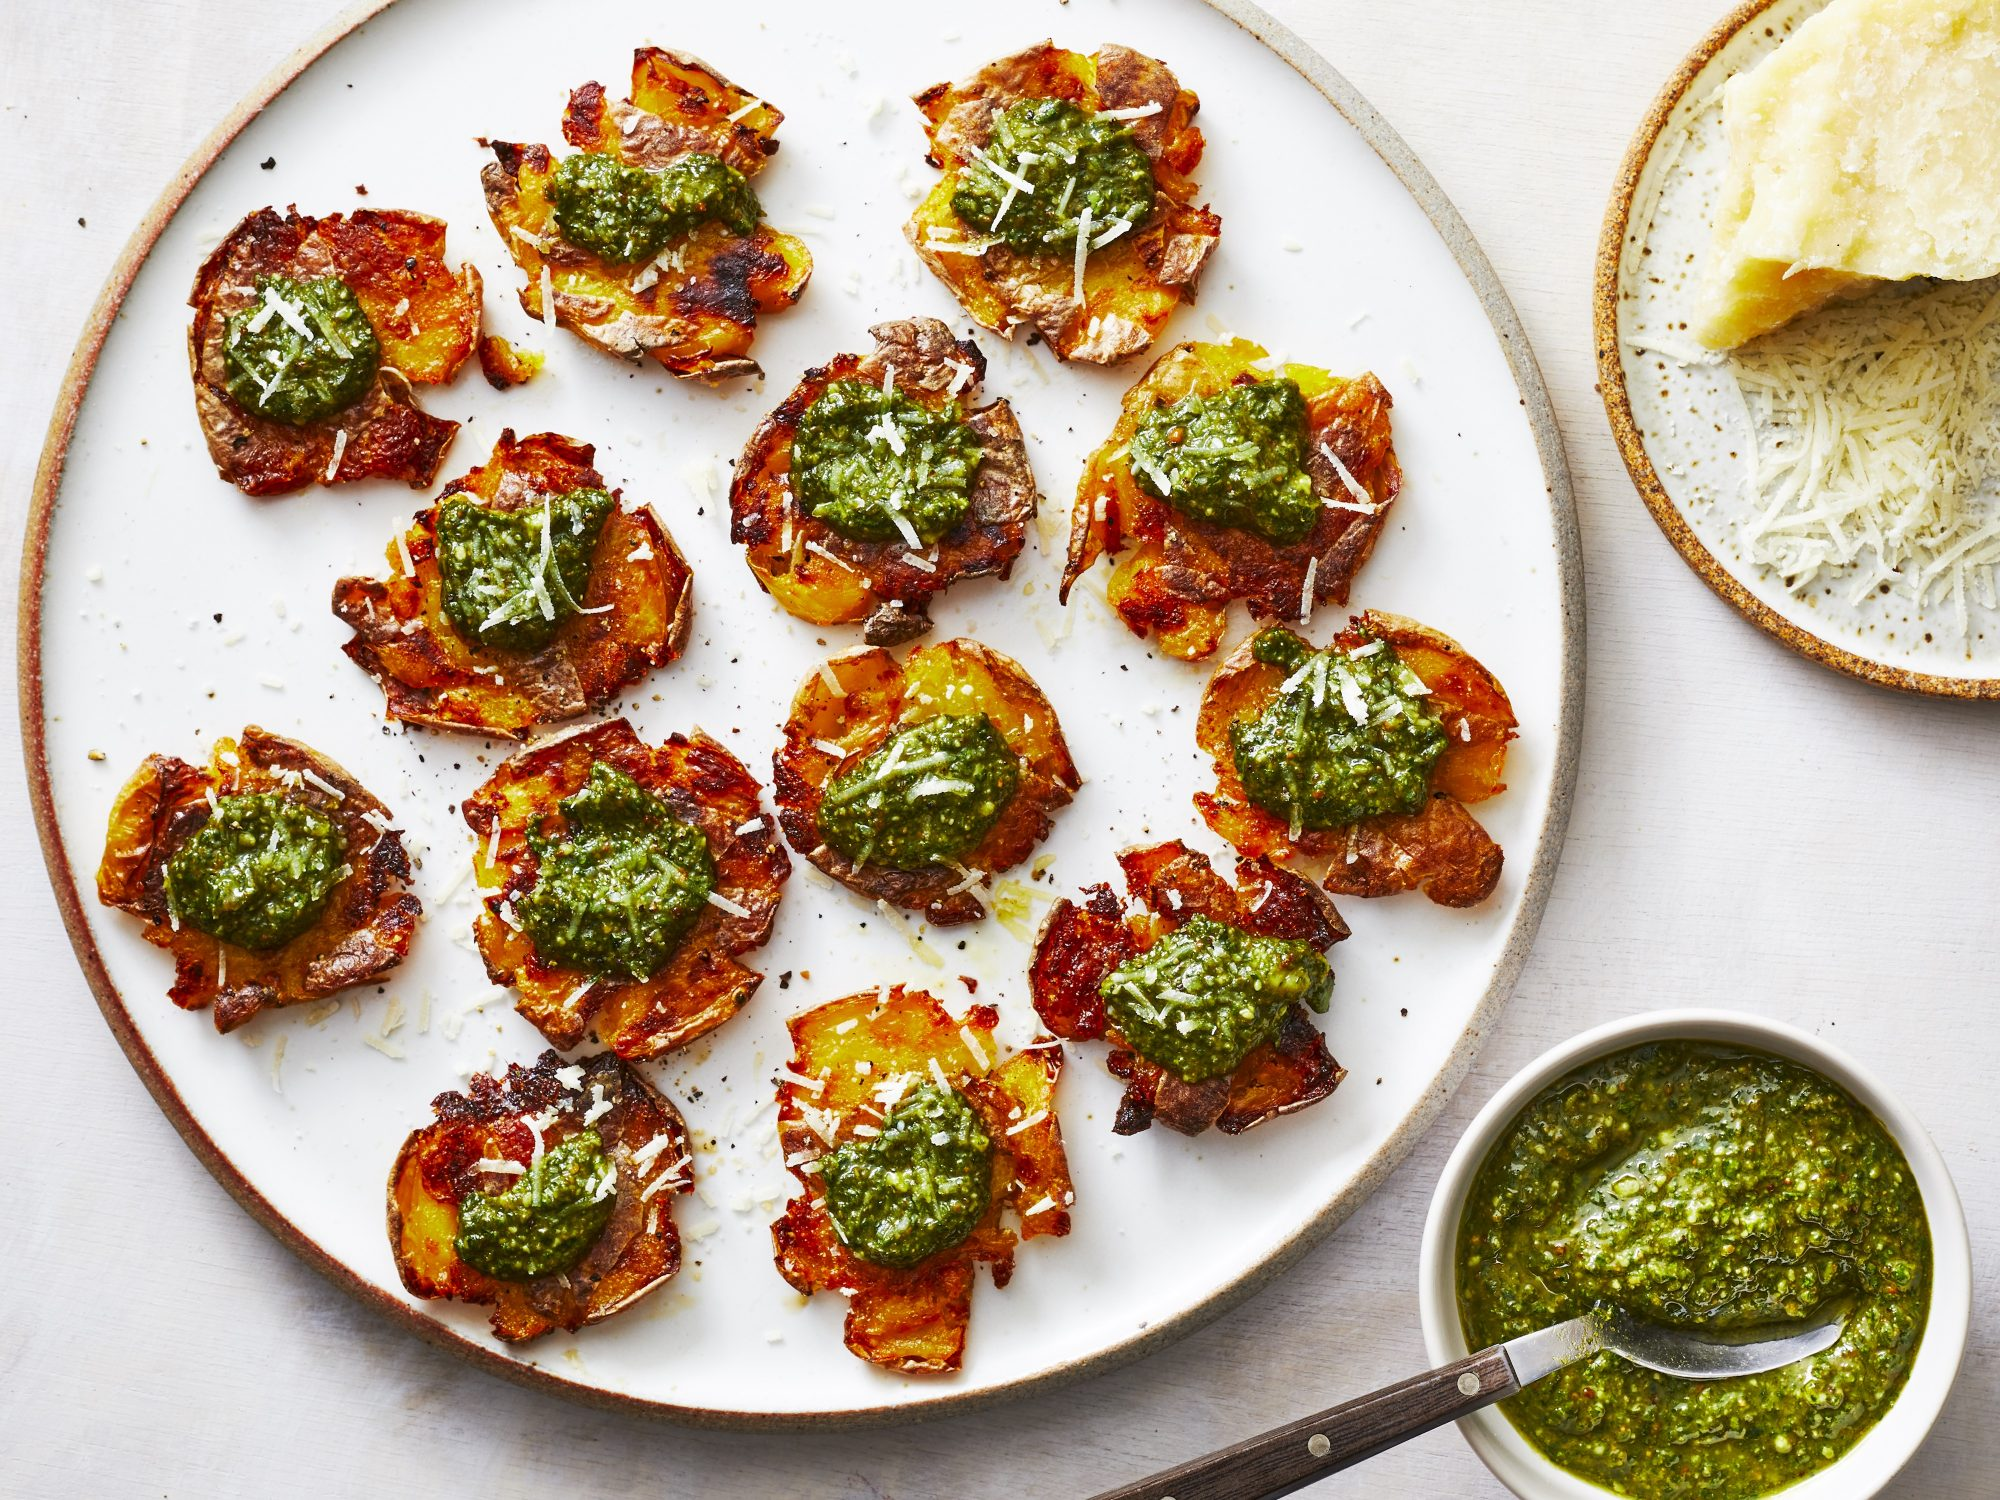 mr - Pesto Smashed Potatoes Image